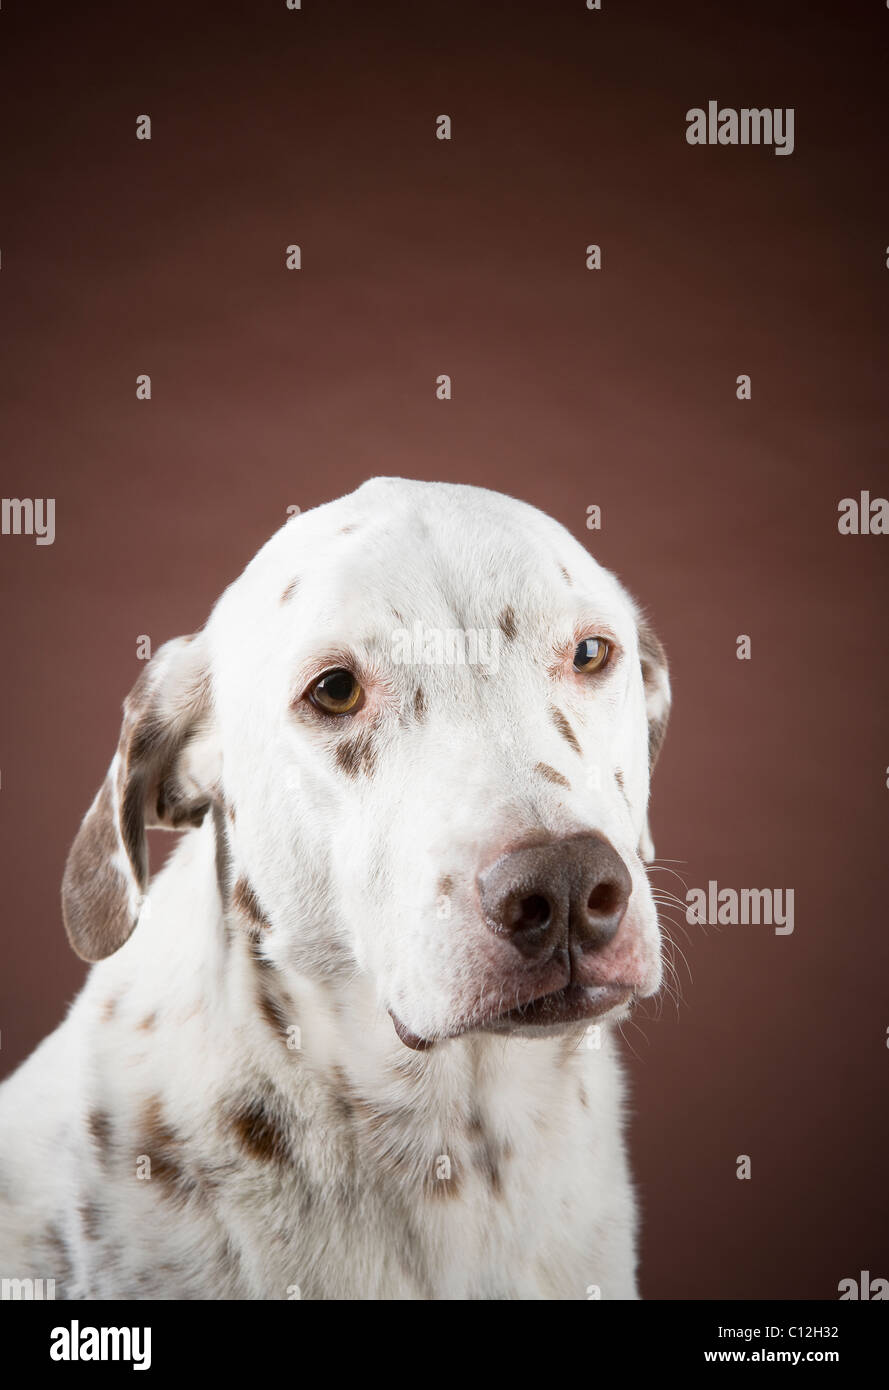 Portrait of a liver spotted dalmatian against a brown background. - Stock Image